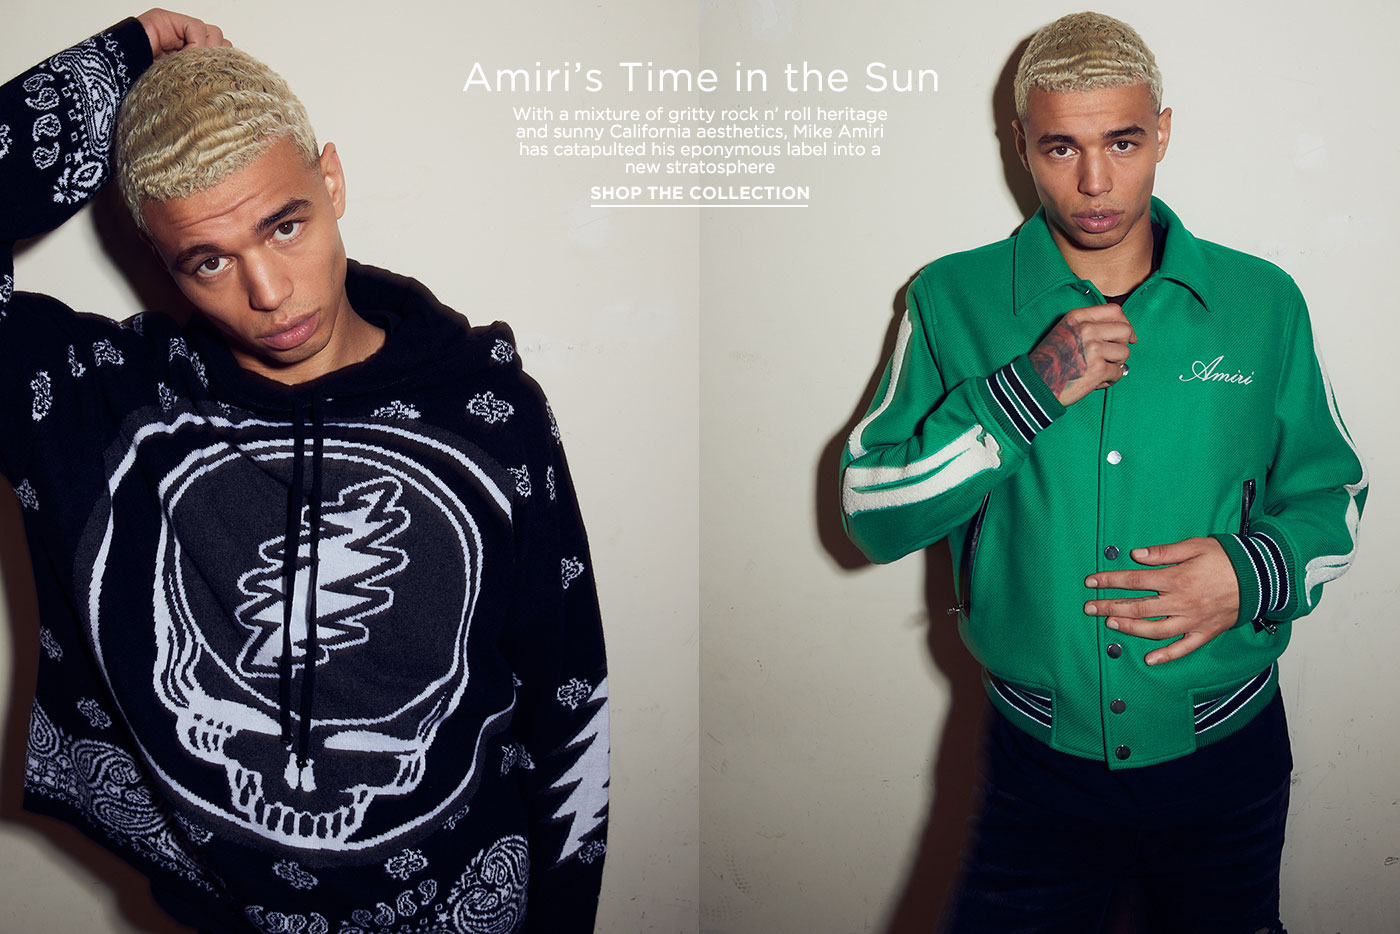 Amiri's Time in the Sun 03/08/21 2